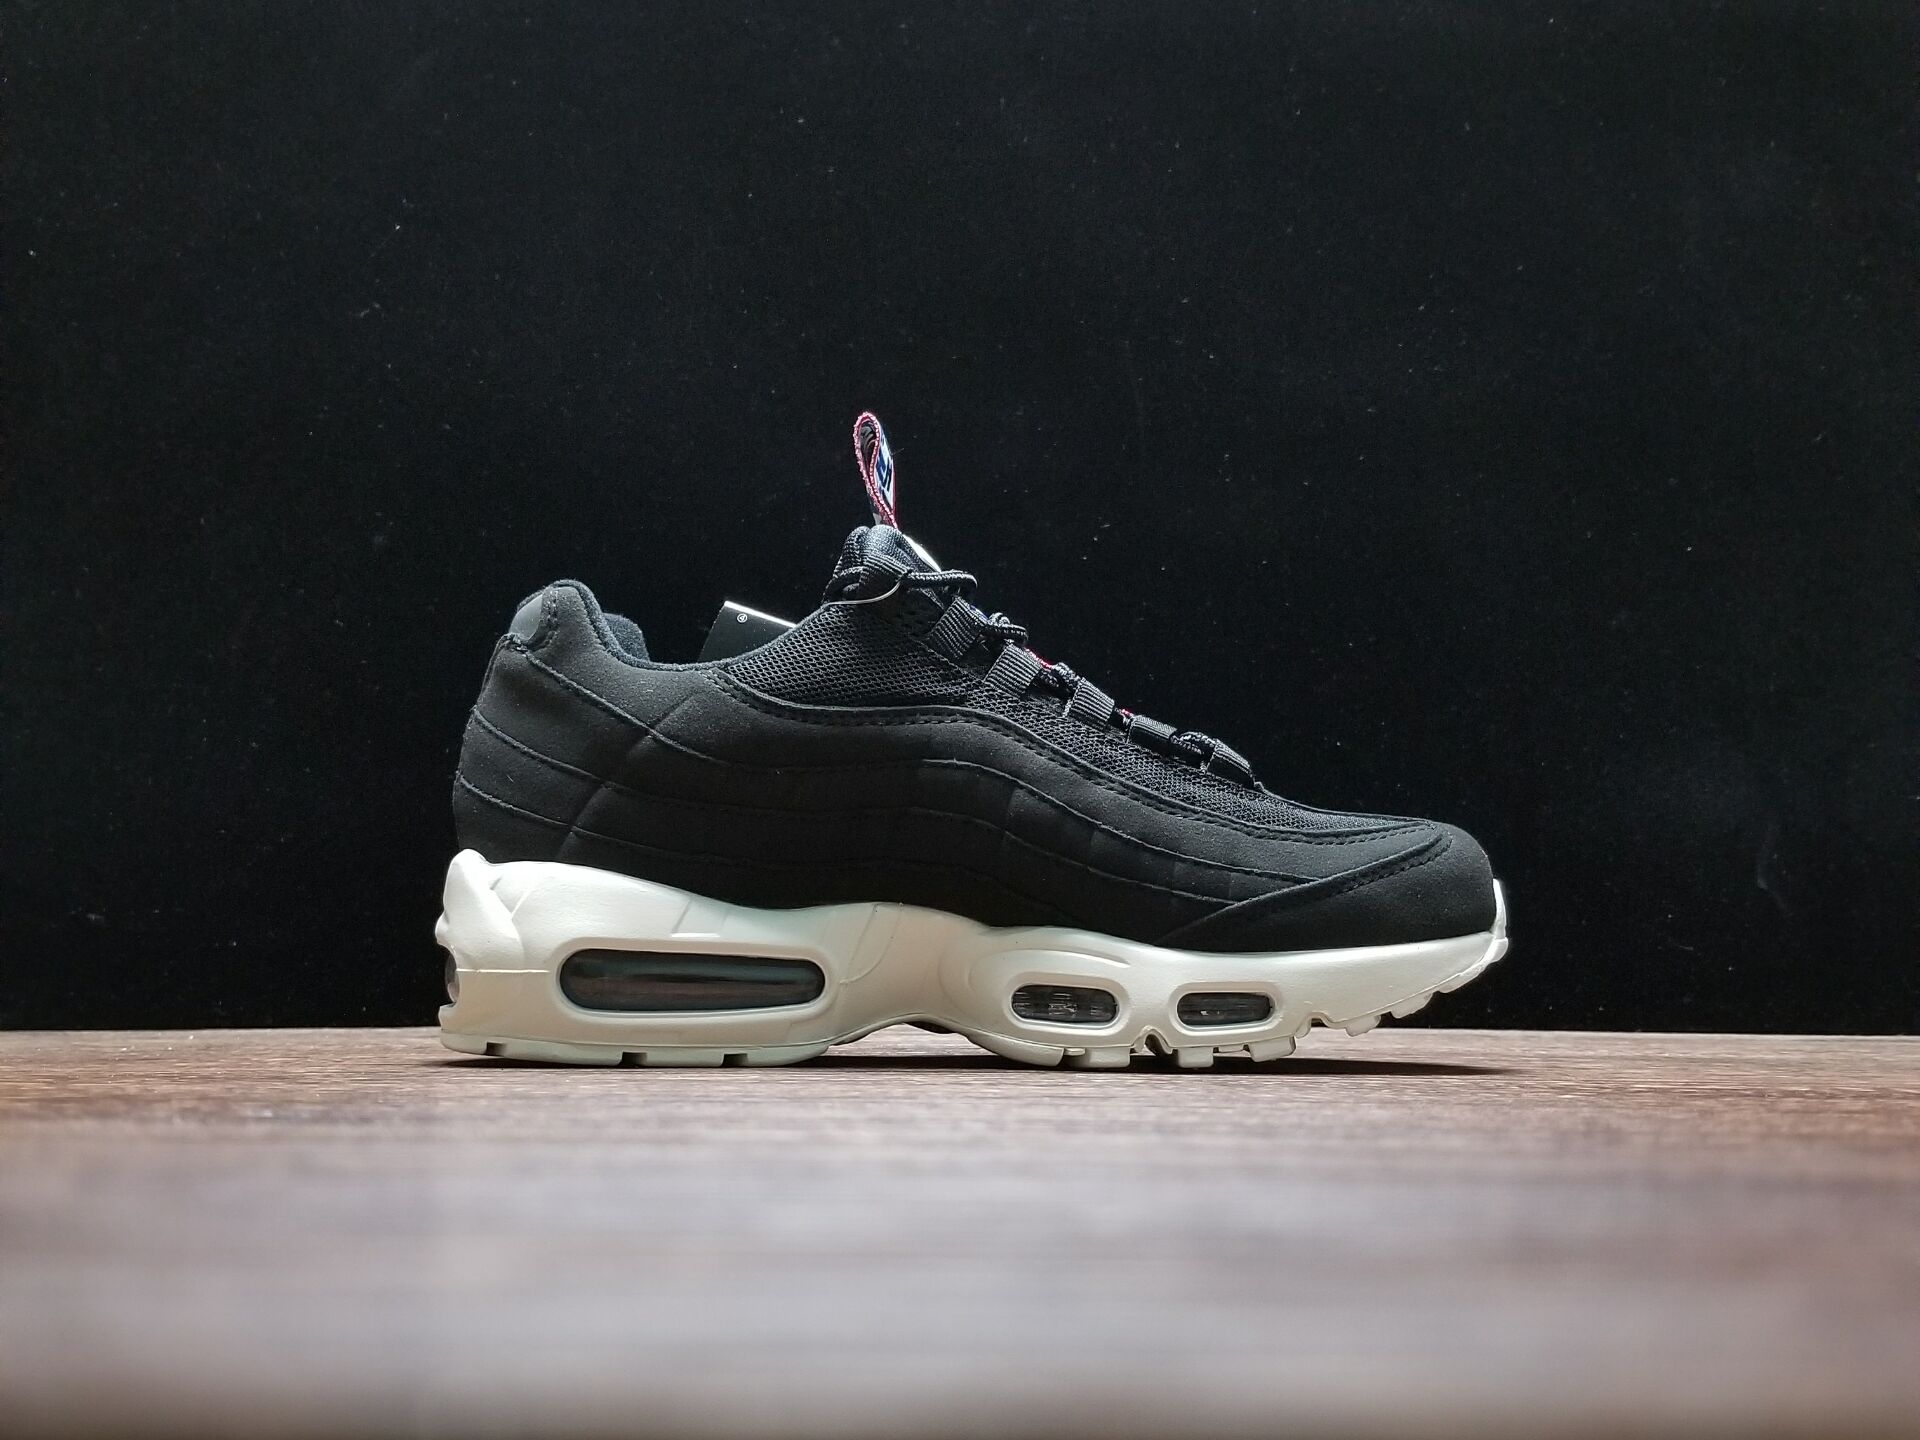 b3702513cf Nike Air Max 95 'Pull Tab' Black/Sail-Gym Red For Sale, Price ...